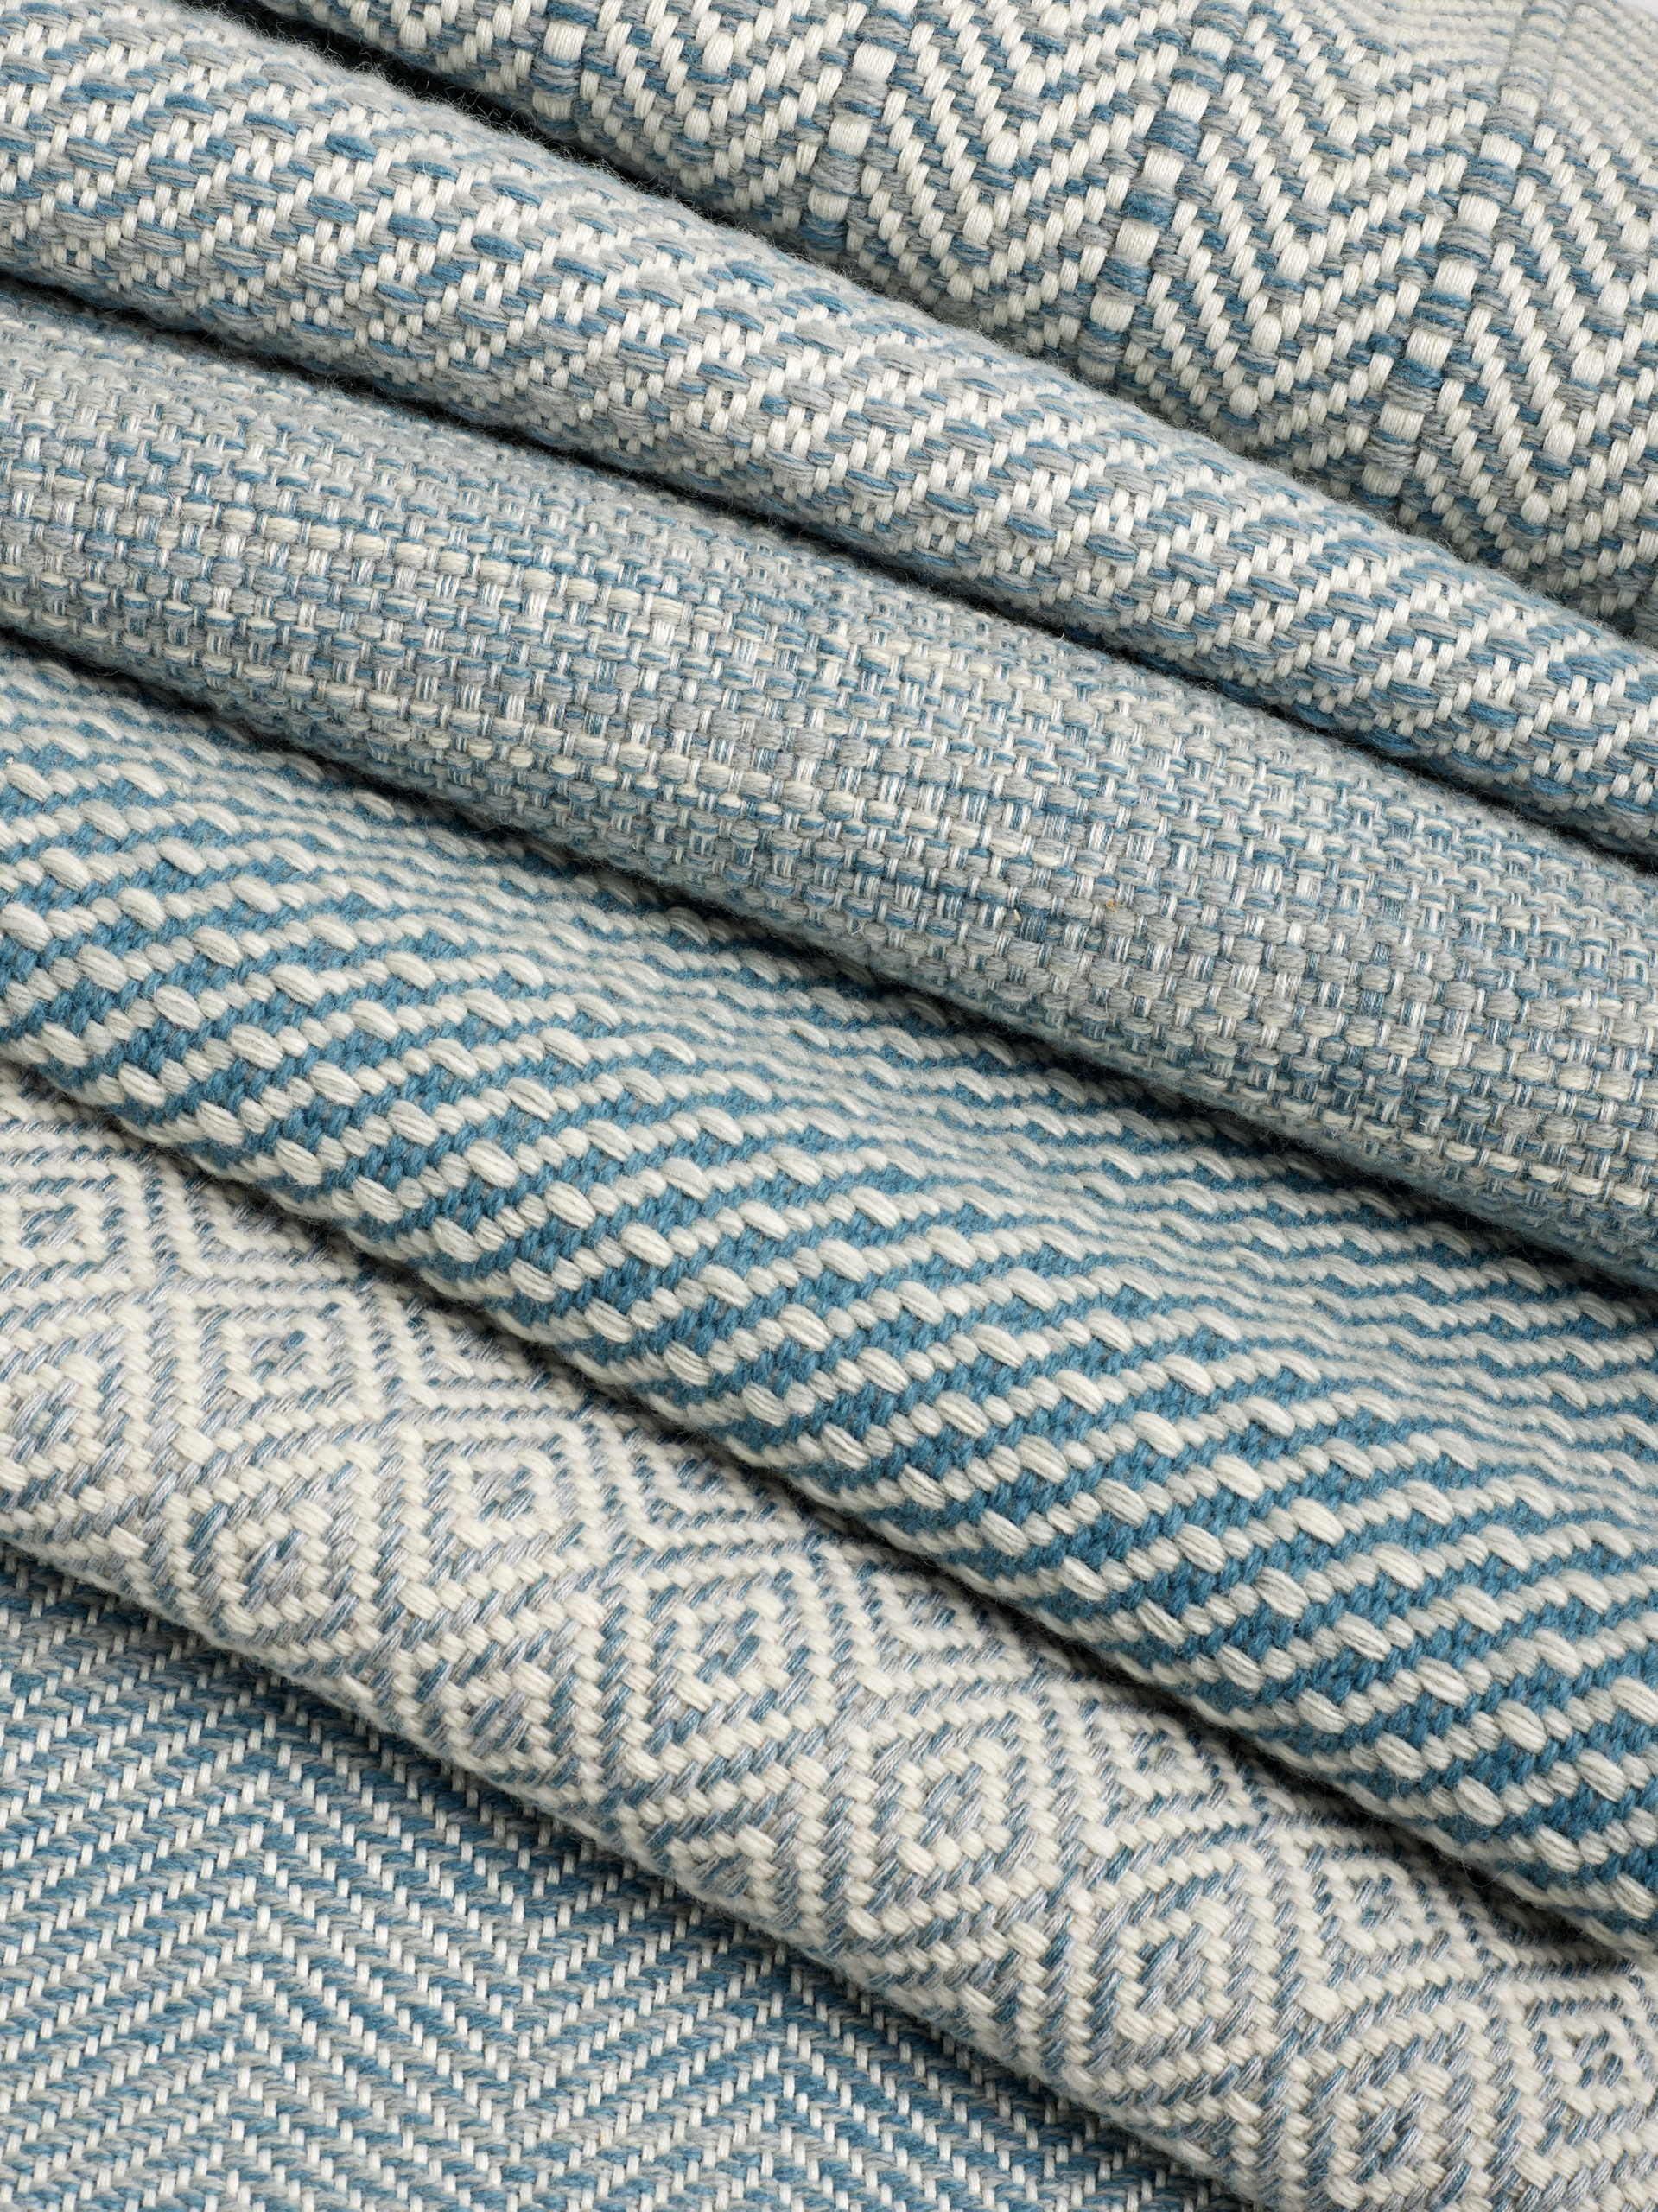 crosby_street_studios_products_Flatweave_Stack_011-scaled-1